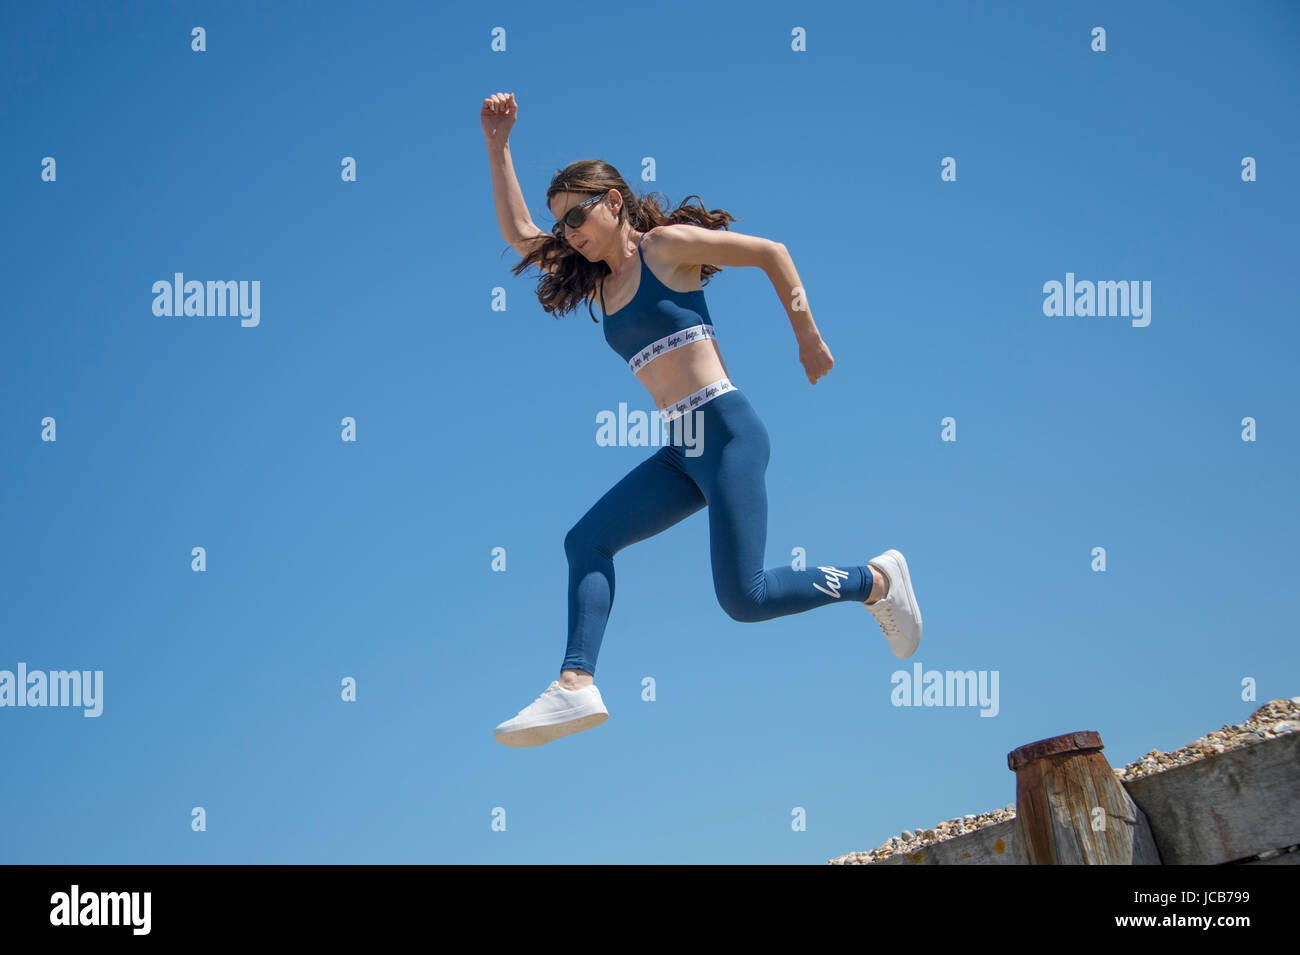 woman doing a running  jump on the beach - Stock Image